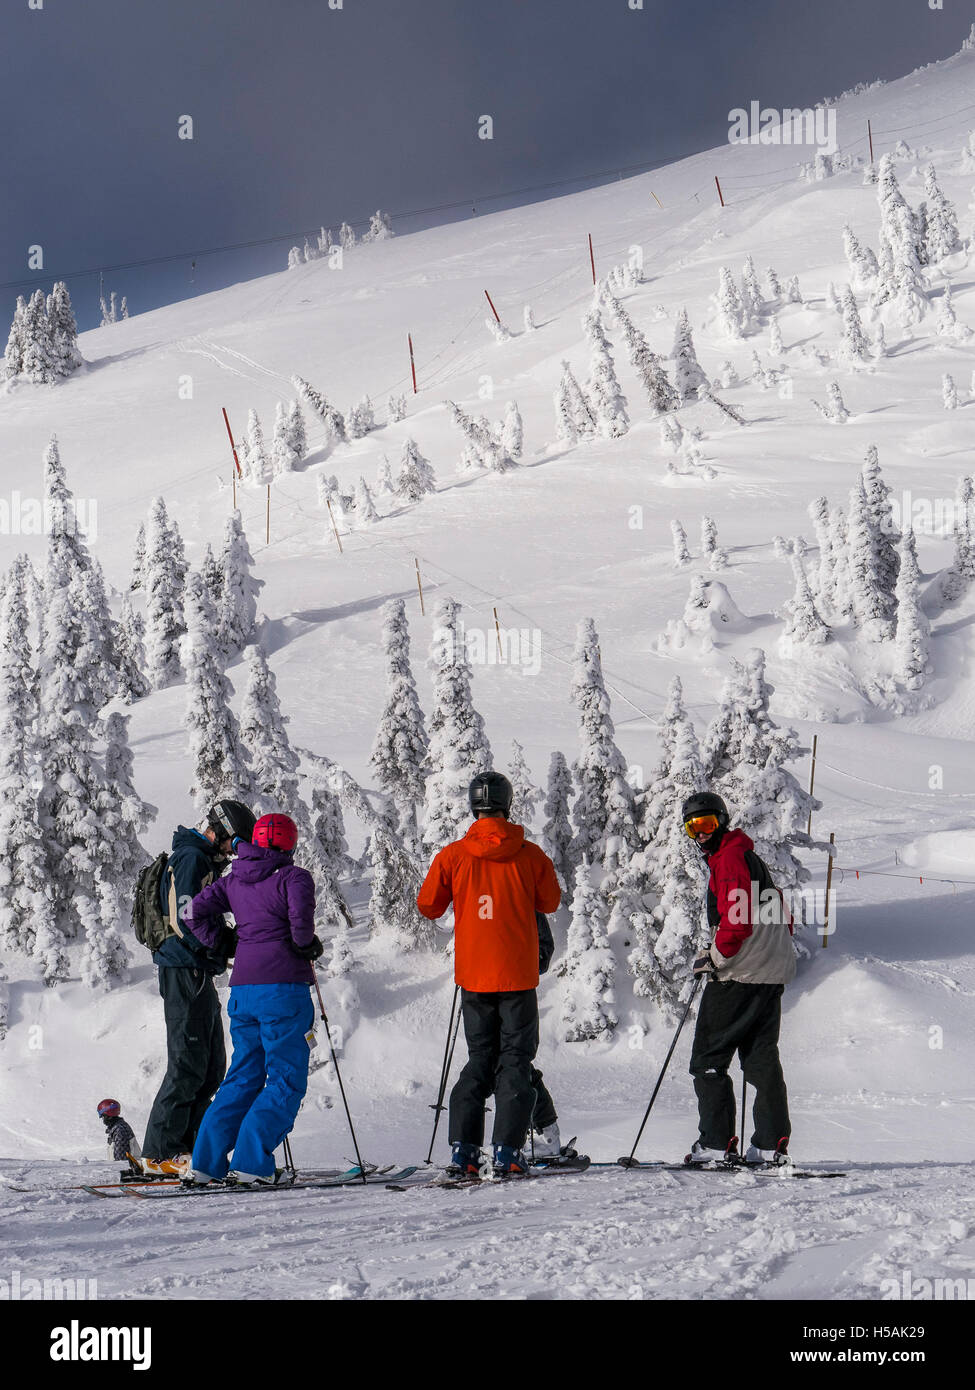 Skiers at the top of the Bullet Express chairlift, Big White Ski Resort, British Columbia, Canada. - Stock Image